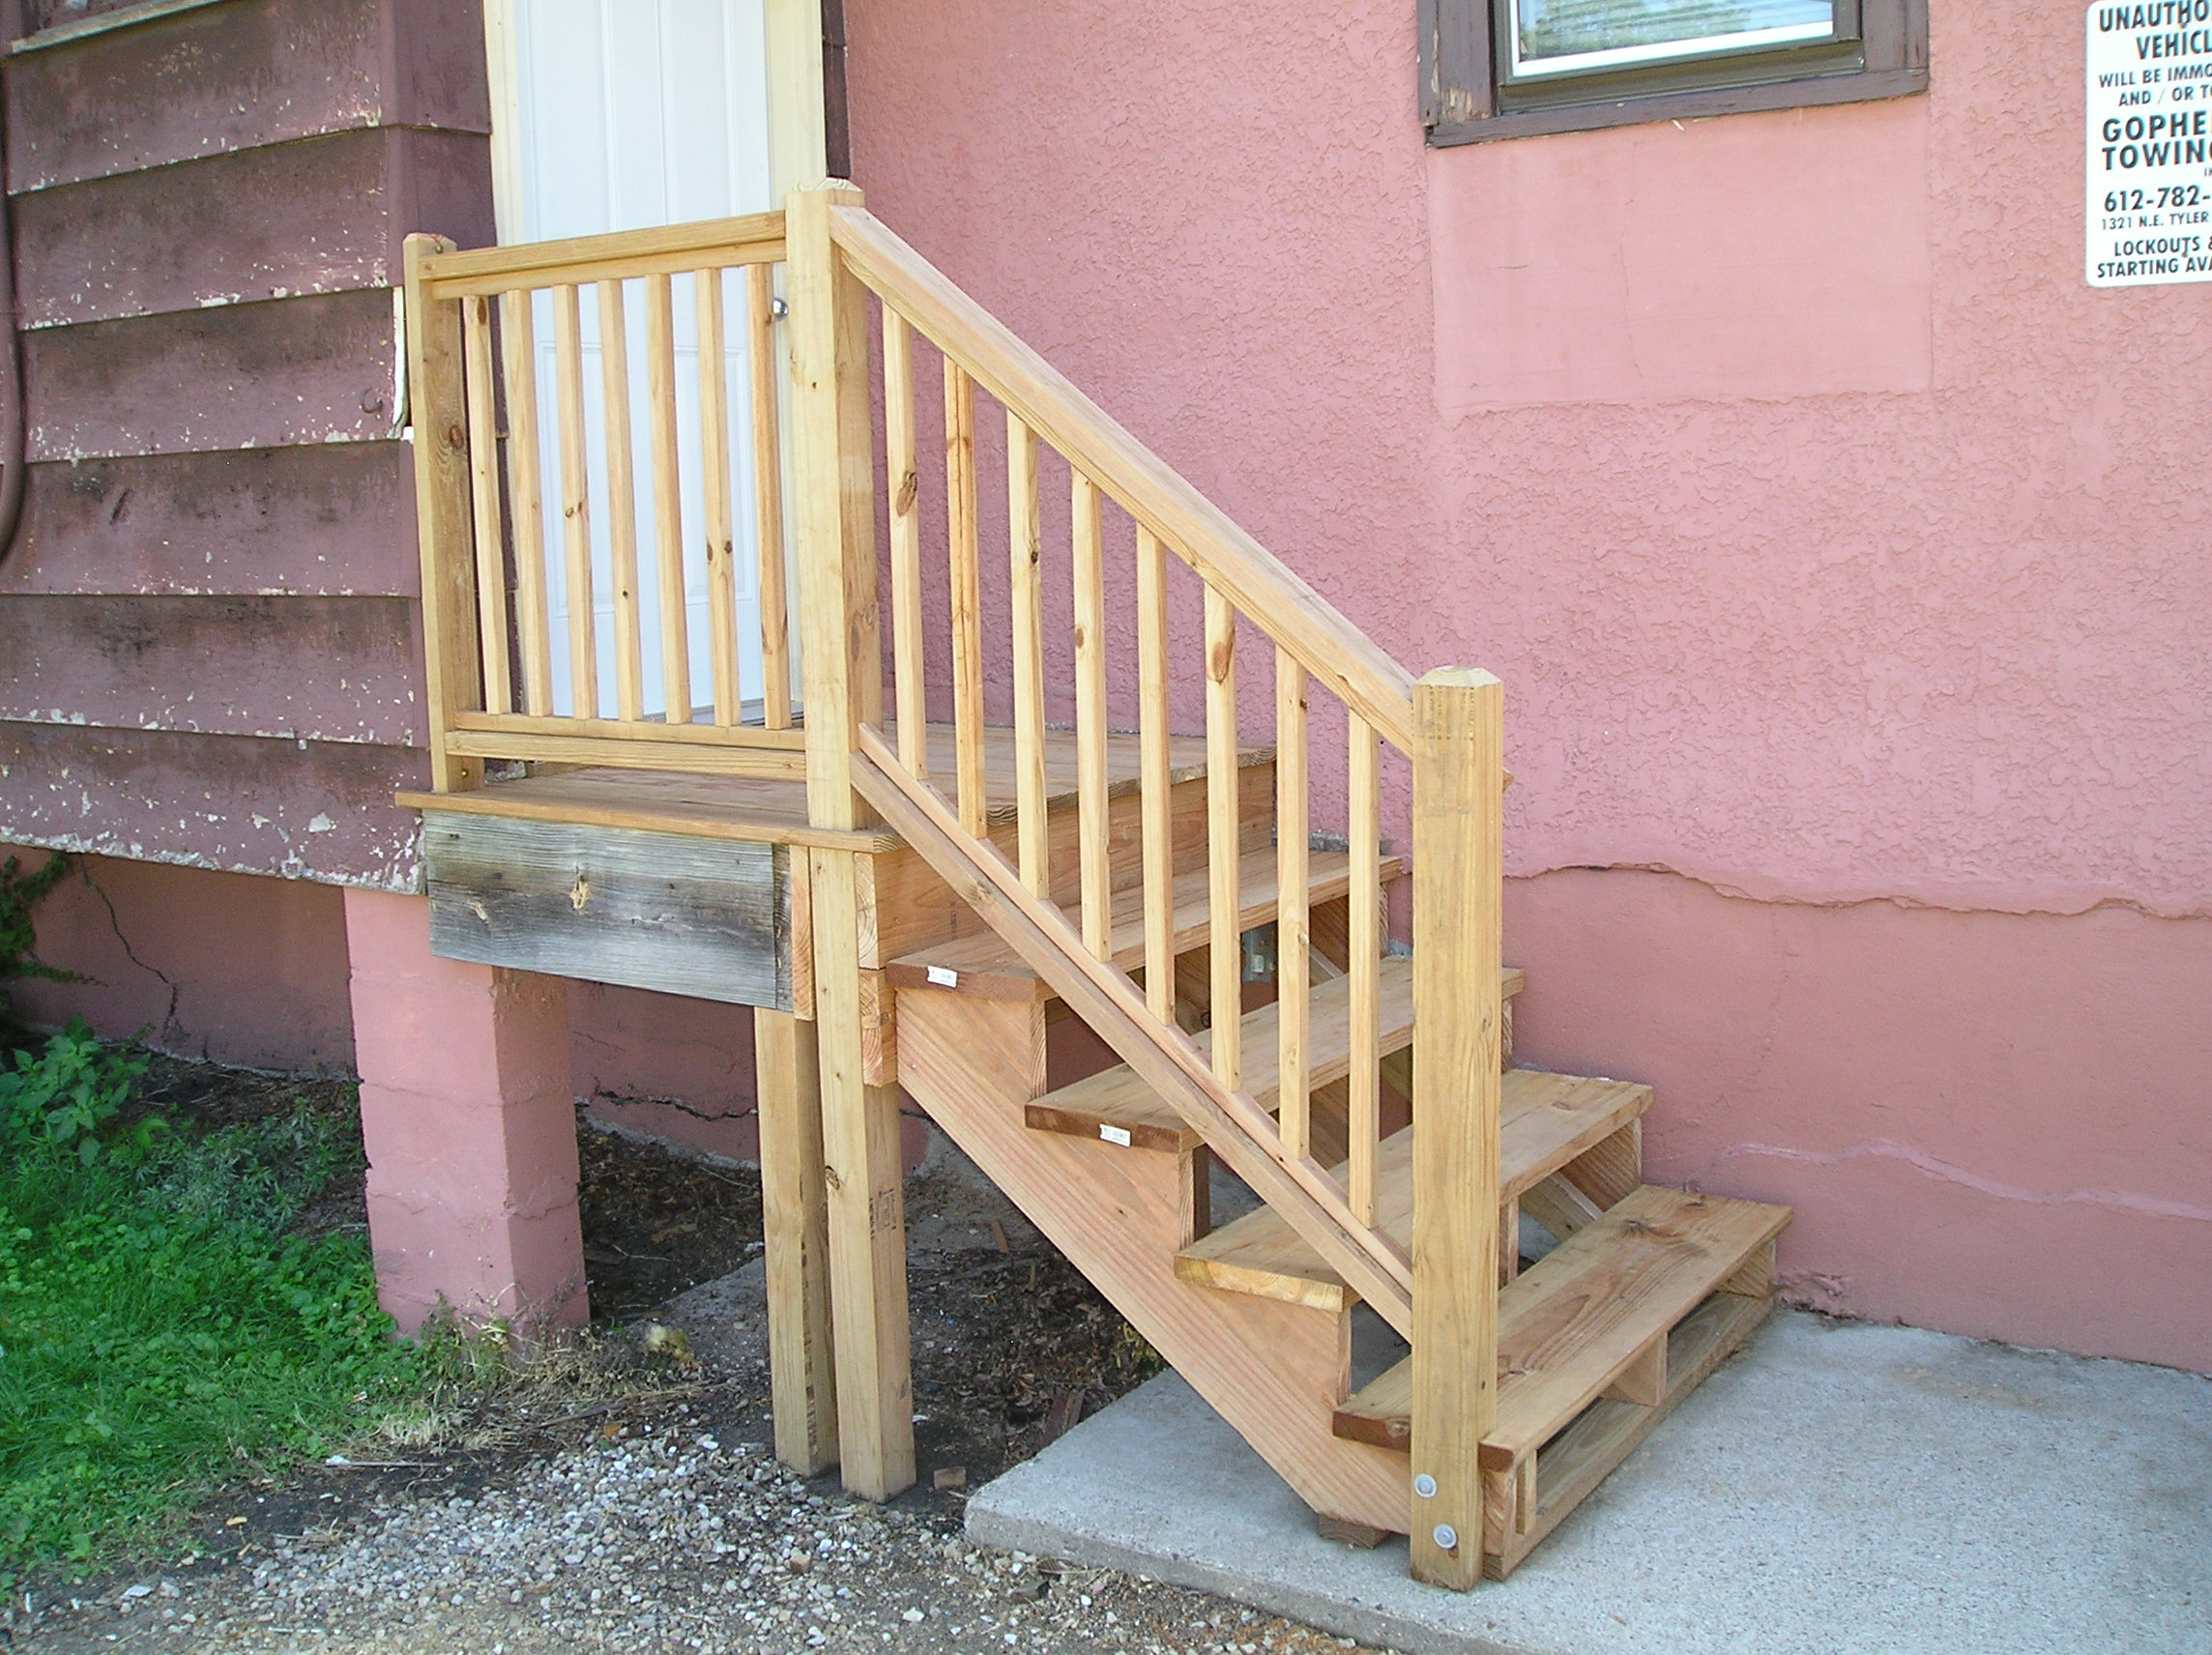 Newel Post Attachment And Notching Same? - Decks & Fencing ...